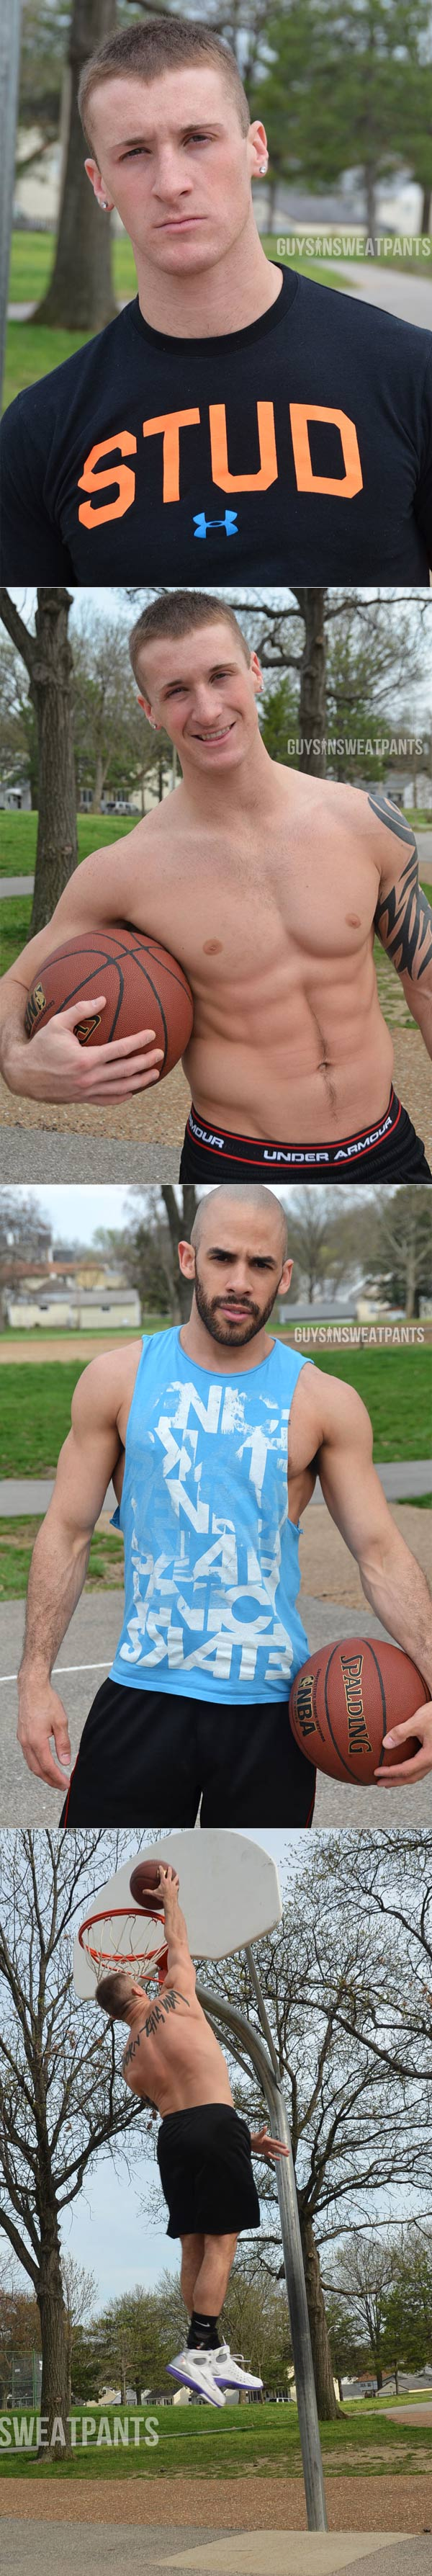 The Game (Austin Wilde & Connor Kline) at Guys In Sweatpants